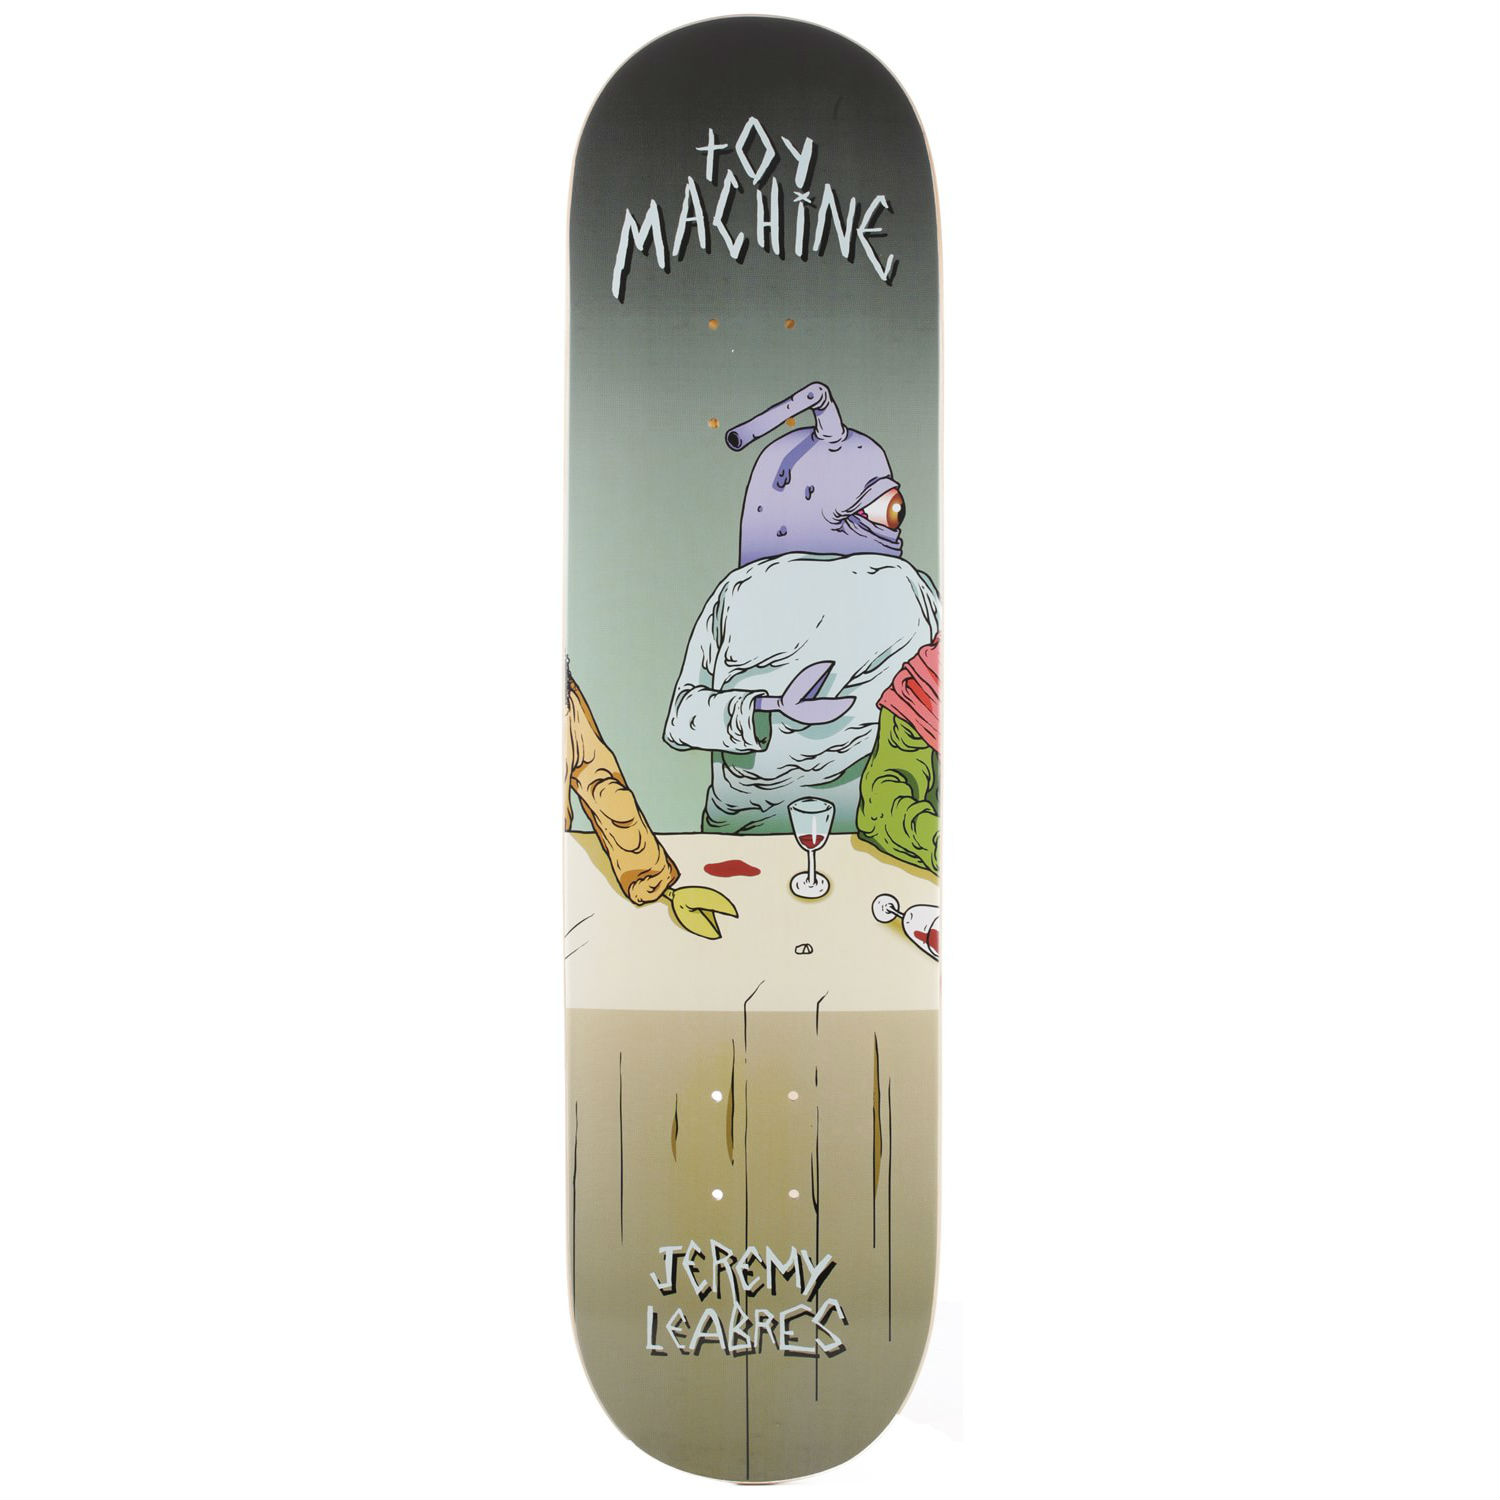 Toy Machine Skateboard Deck Leabres Last Supper 8.125 Pro 1 of 8 FREE POST & FREE GRIP